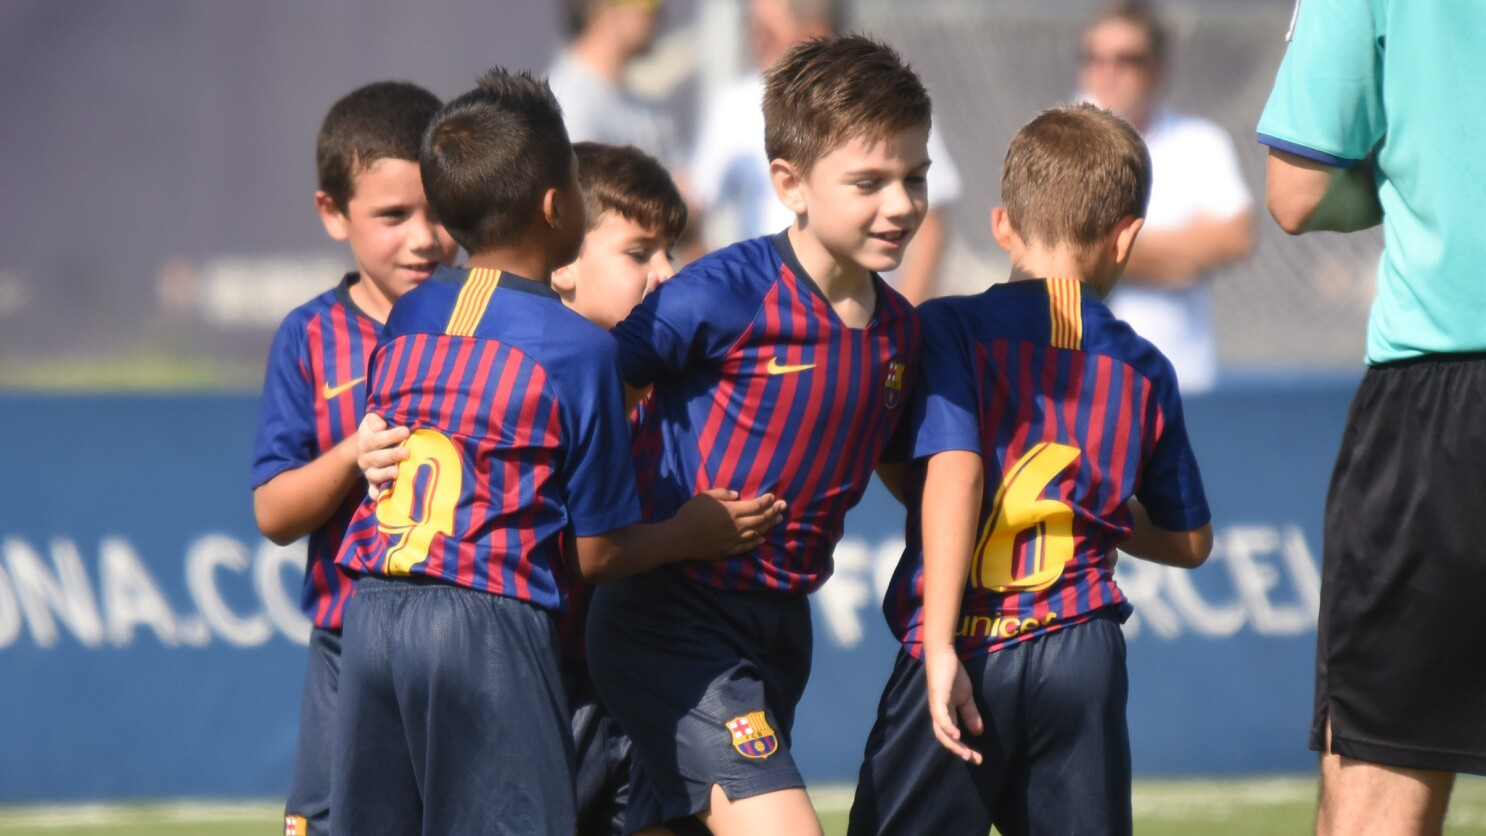 Fc Barcelona S Youth Academy Searches For Soccer S Next Messi Los Angeles Times